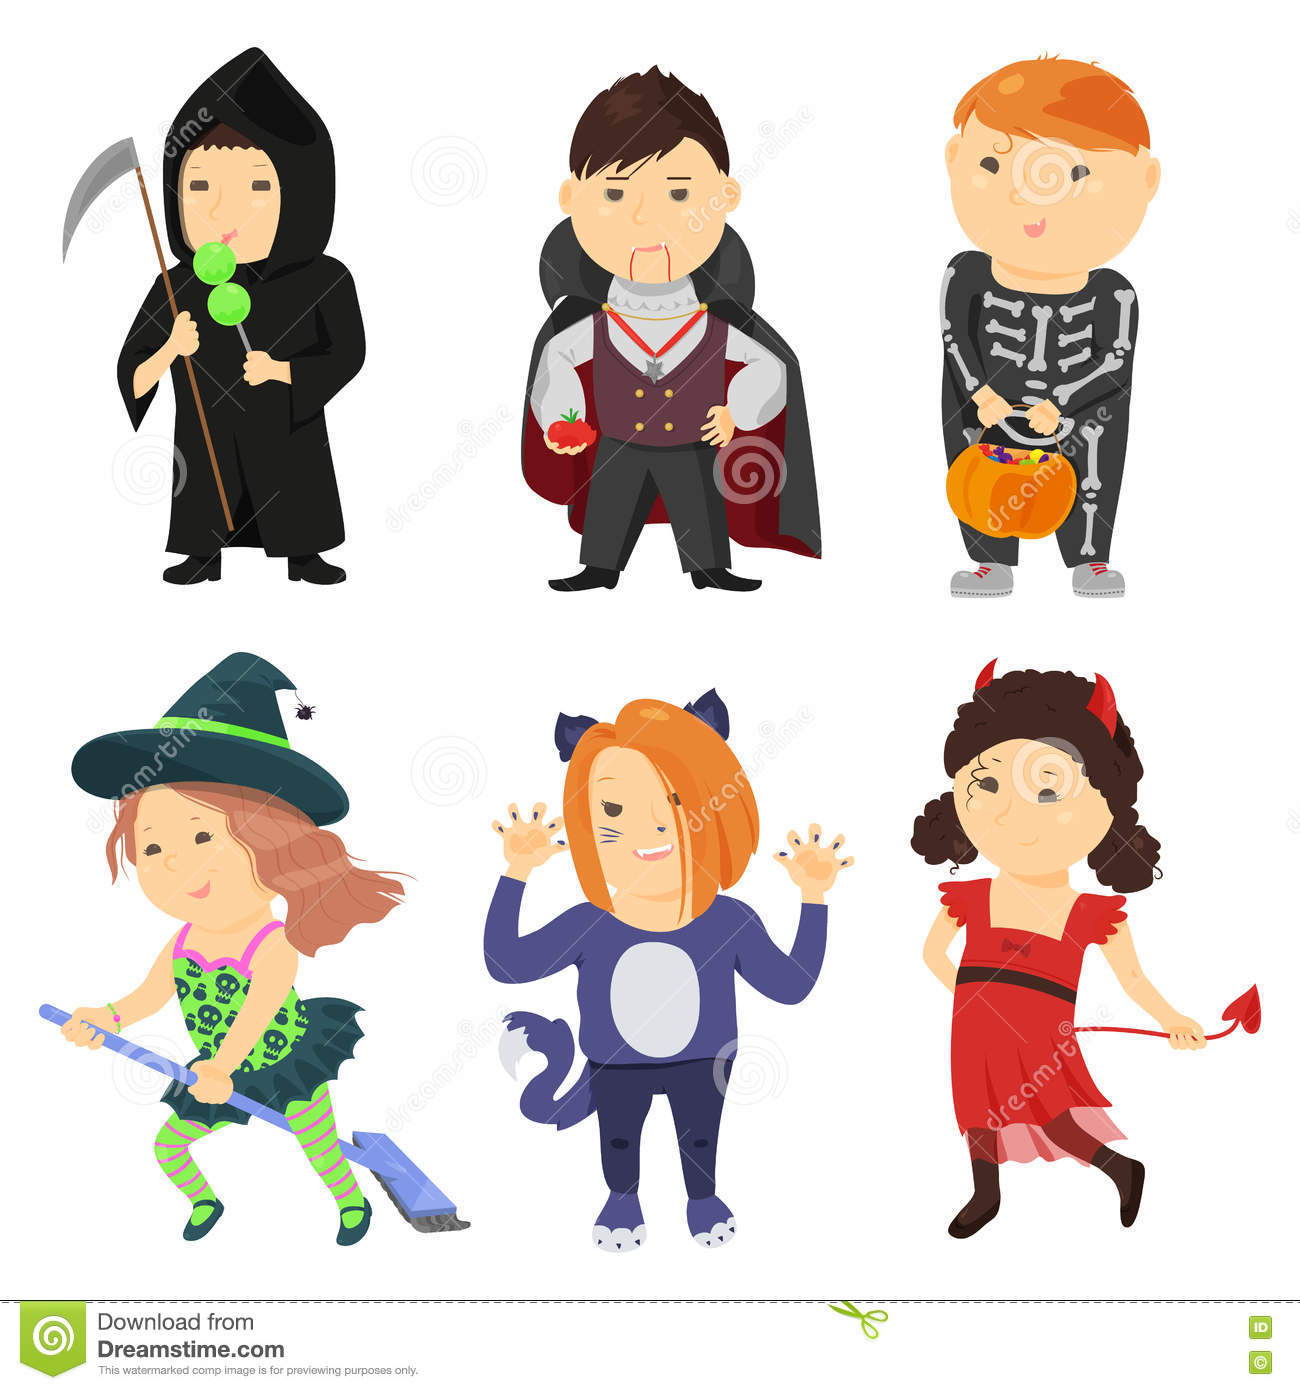 Kids character costumes clipart black and white download Cute Cartoon Kids In Halloween Costumes Stock Vector - Image: 76566954 black and white download